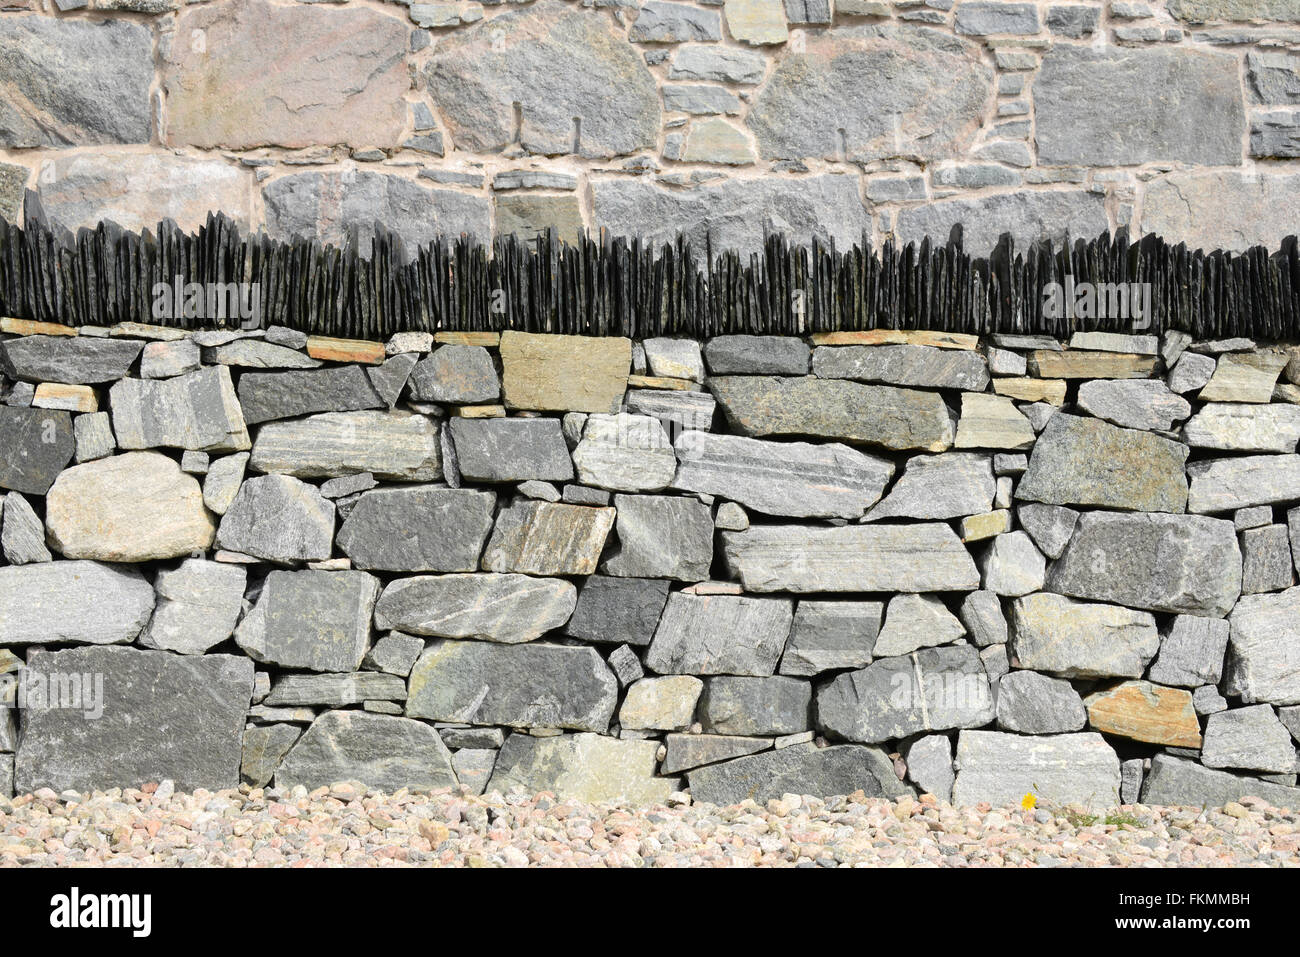 An immaculate new dry stone wall topped with vertical slates on the Isle of Harris, Outer Hebrides, Scotland - Stock Image